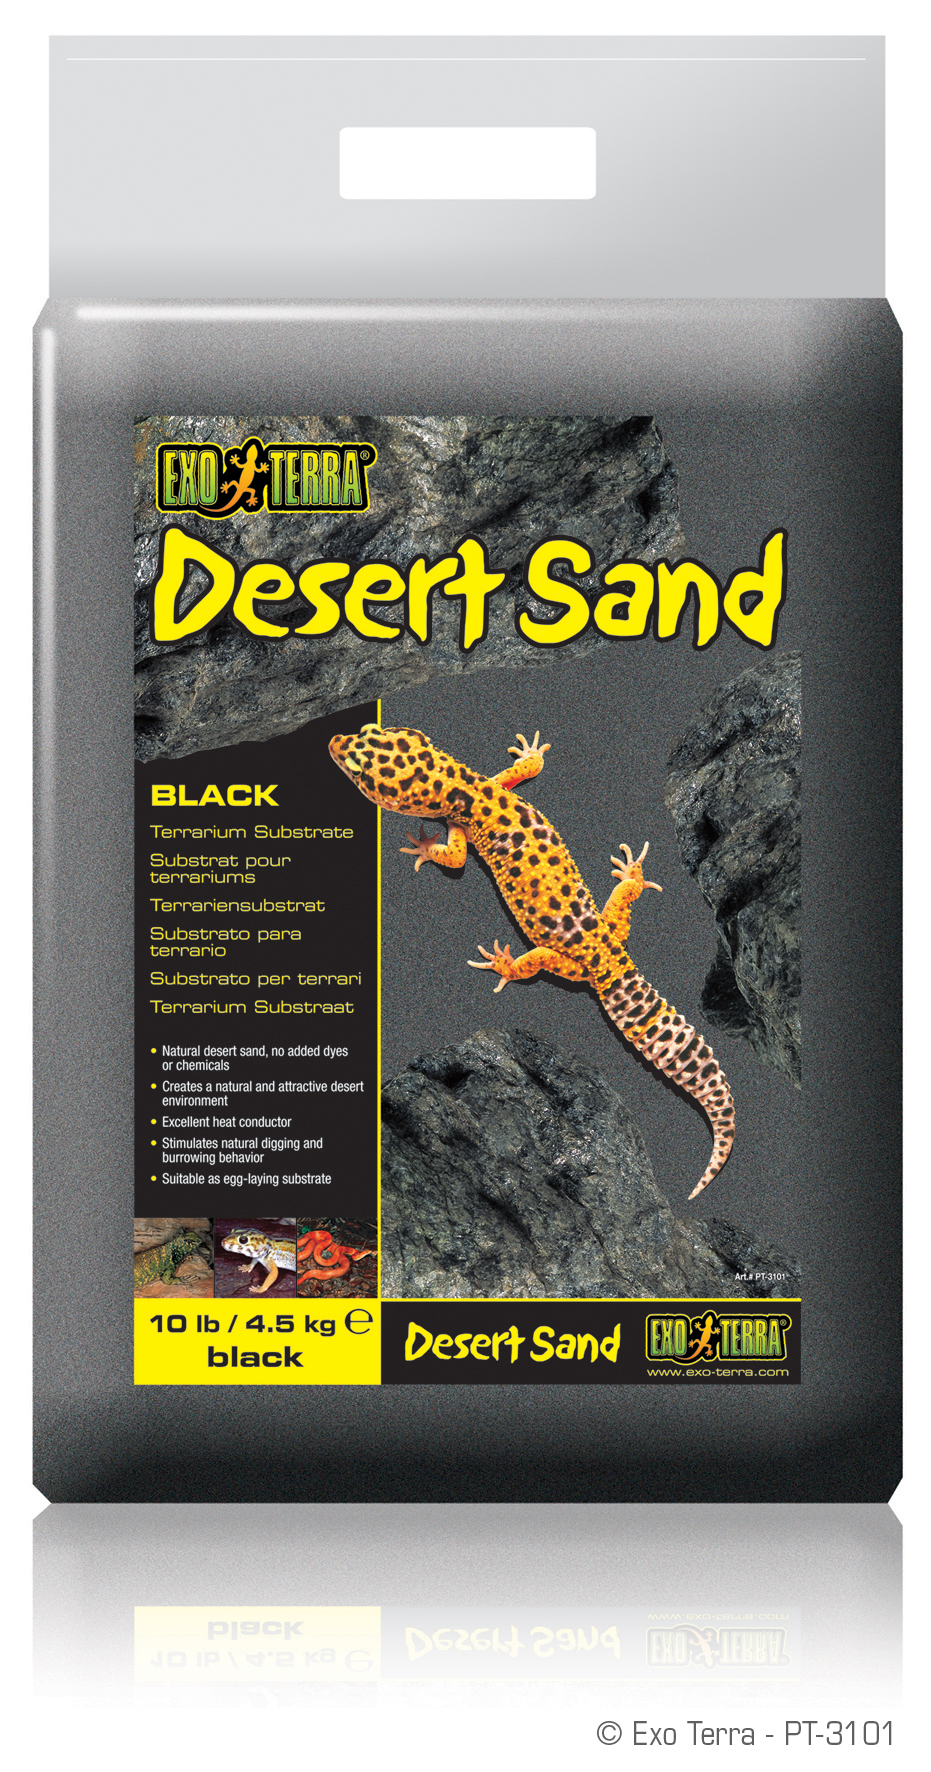 http://www.exo-terra.com/download/high_res/products/images/PT3101_Desert_Sand_Black_Packaging.jpg